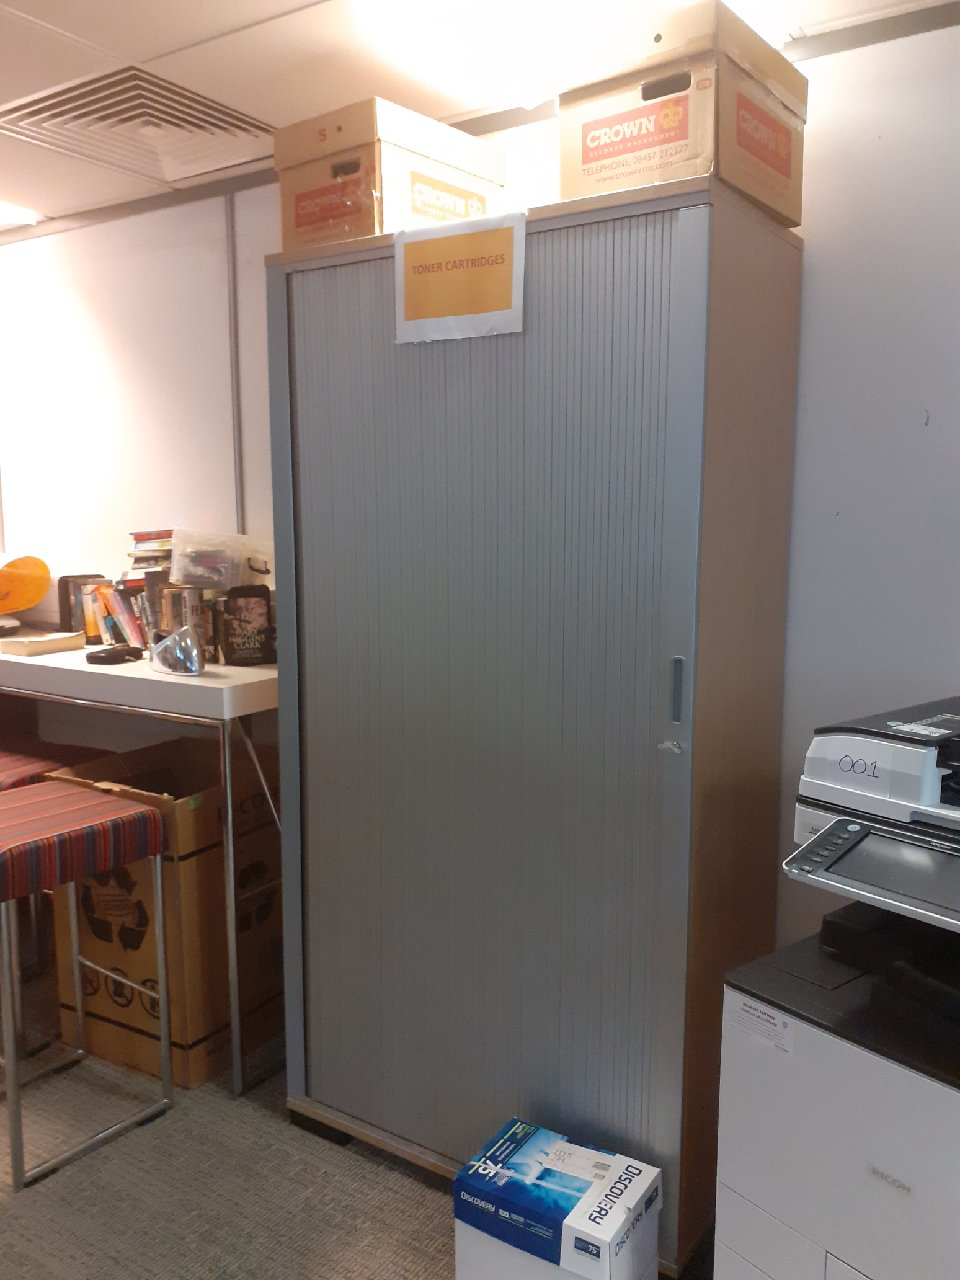 4 x Large wooden storage cabinets with metal doors.